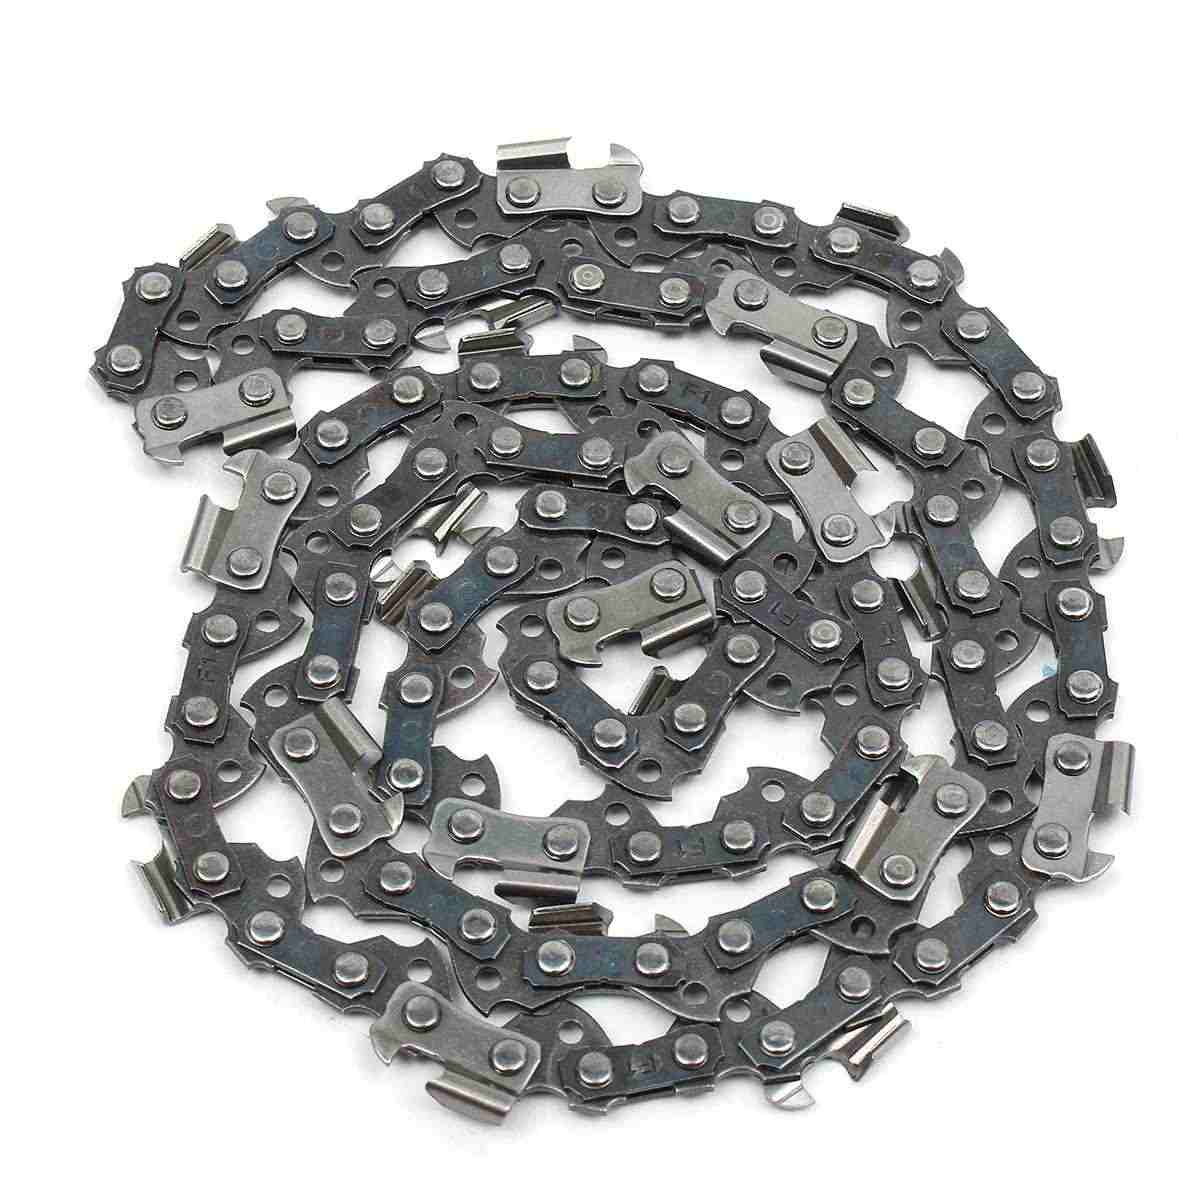 2pcs 14 Inch Chainsaw Saw Chain with File Fit for Stihl 017 MS170 MS171